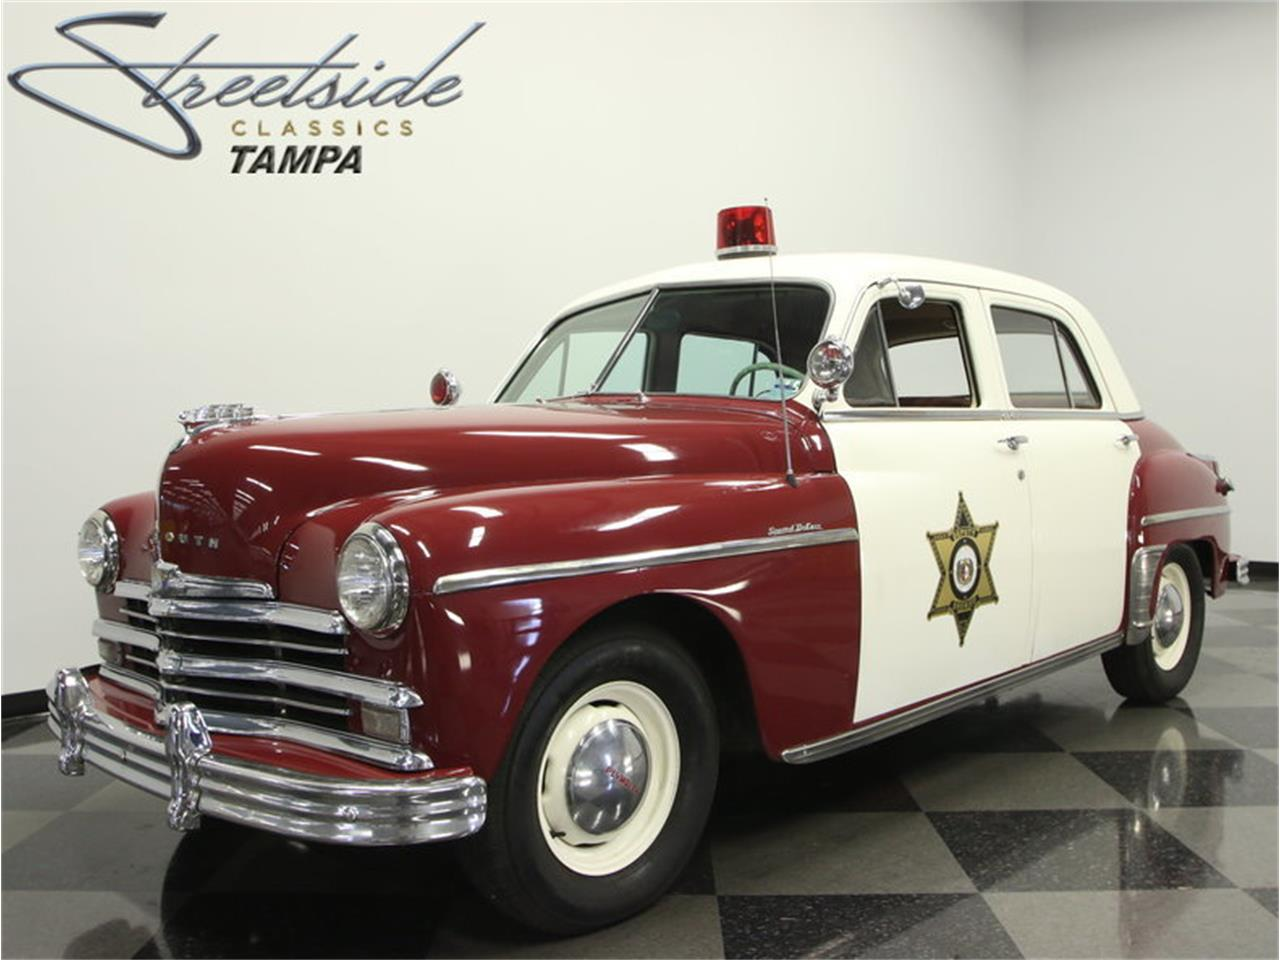 Police Car For Sale >> 1949 Plymouth Special Deluxe Police Car For Sale Classiccars Com